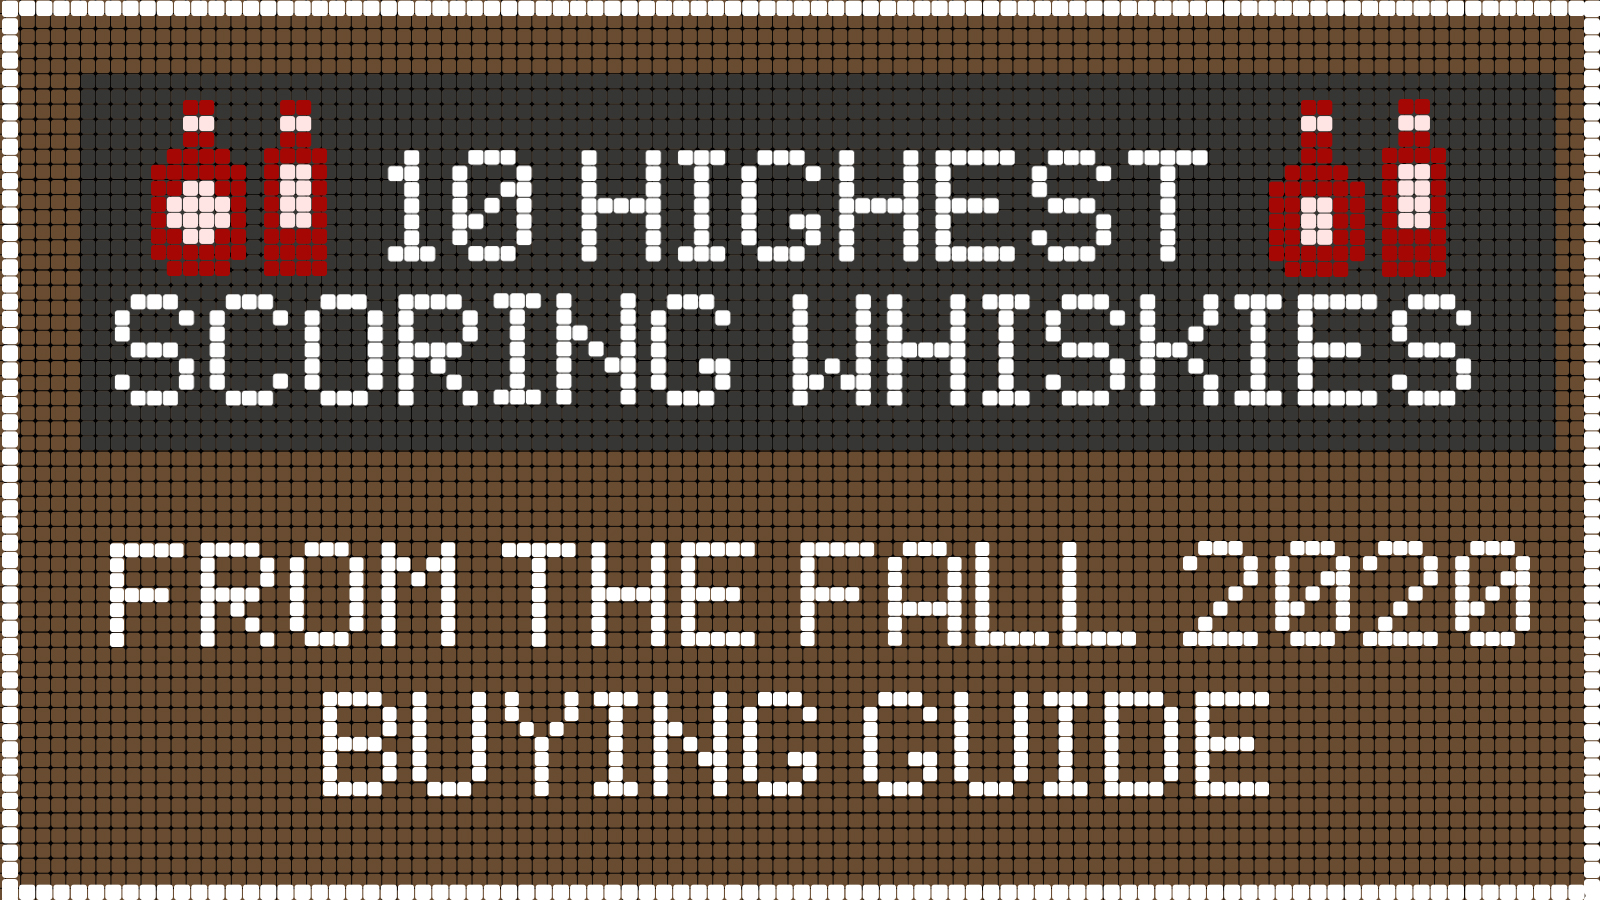 10 Highest-Scoring Whiskies in the Fall 2020 Buying Guide